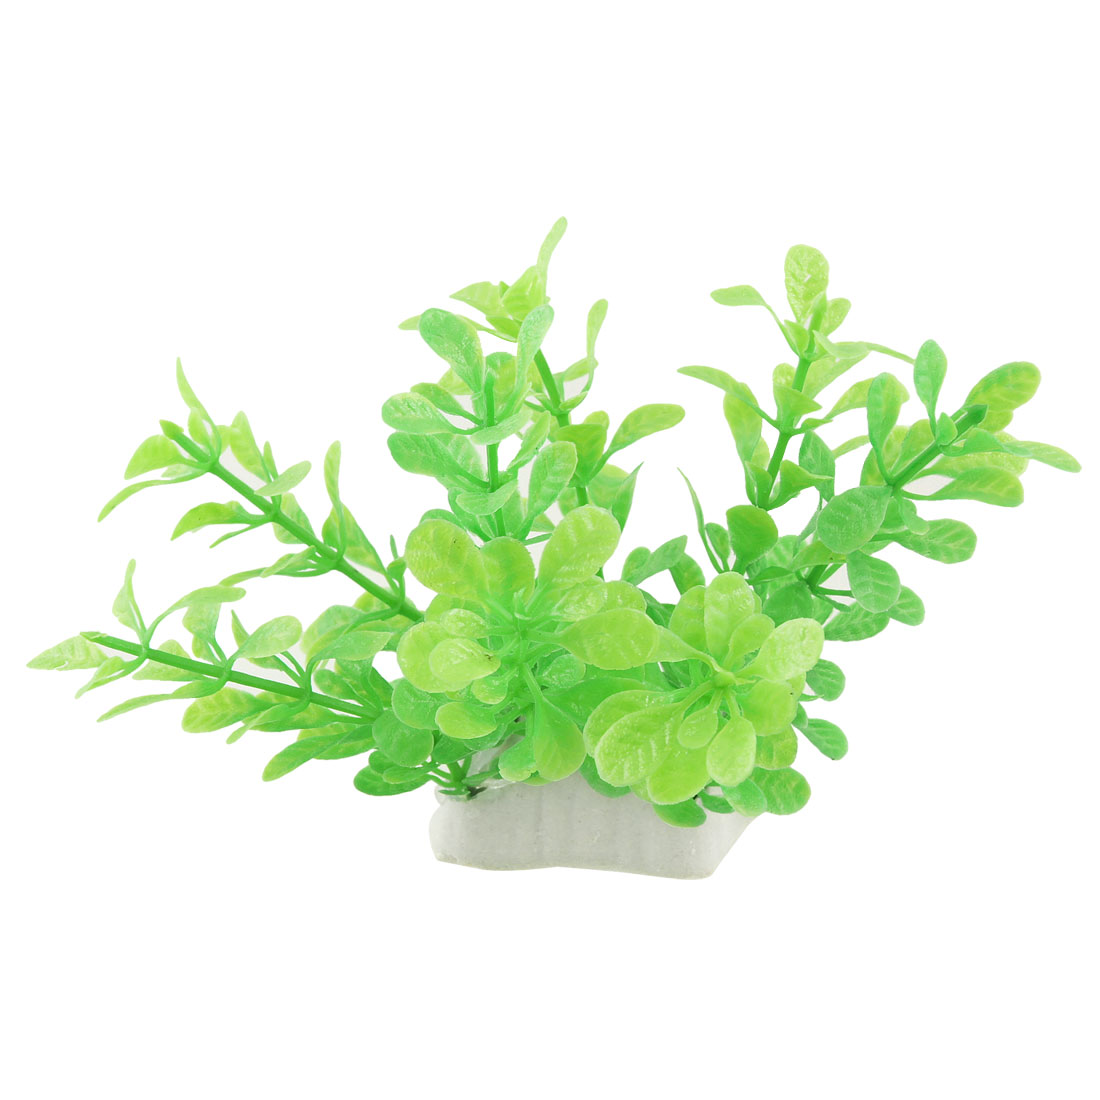 "Fish Tank Artificial Green Plastic Plant Ornament 3.7"" w Perforated Base"